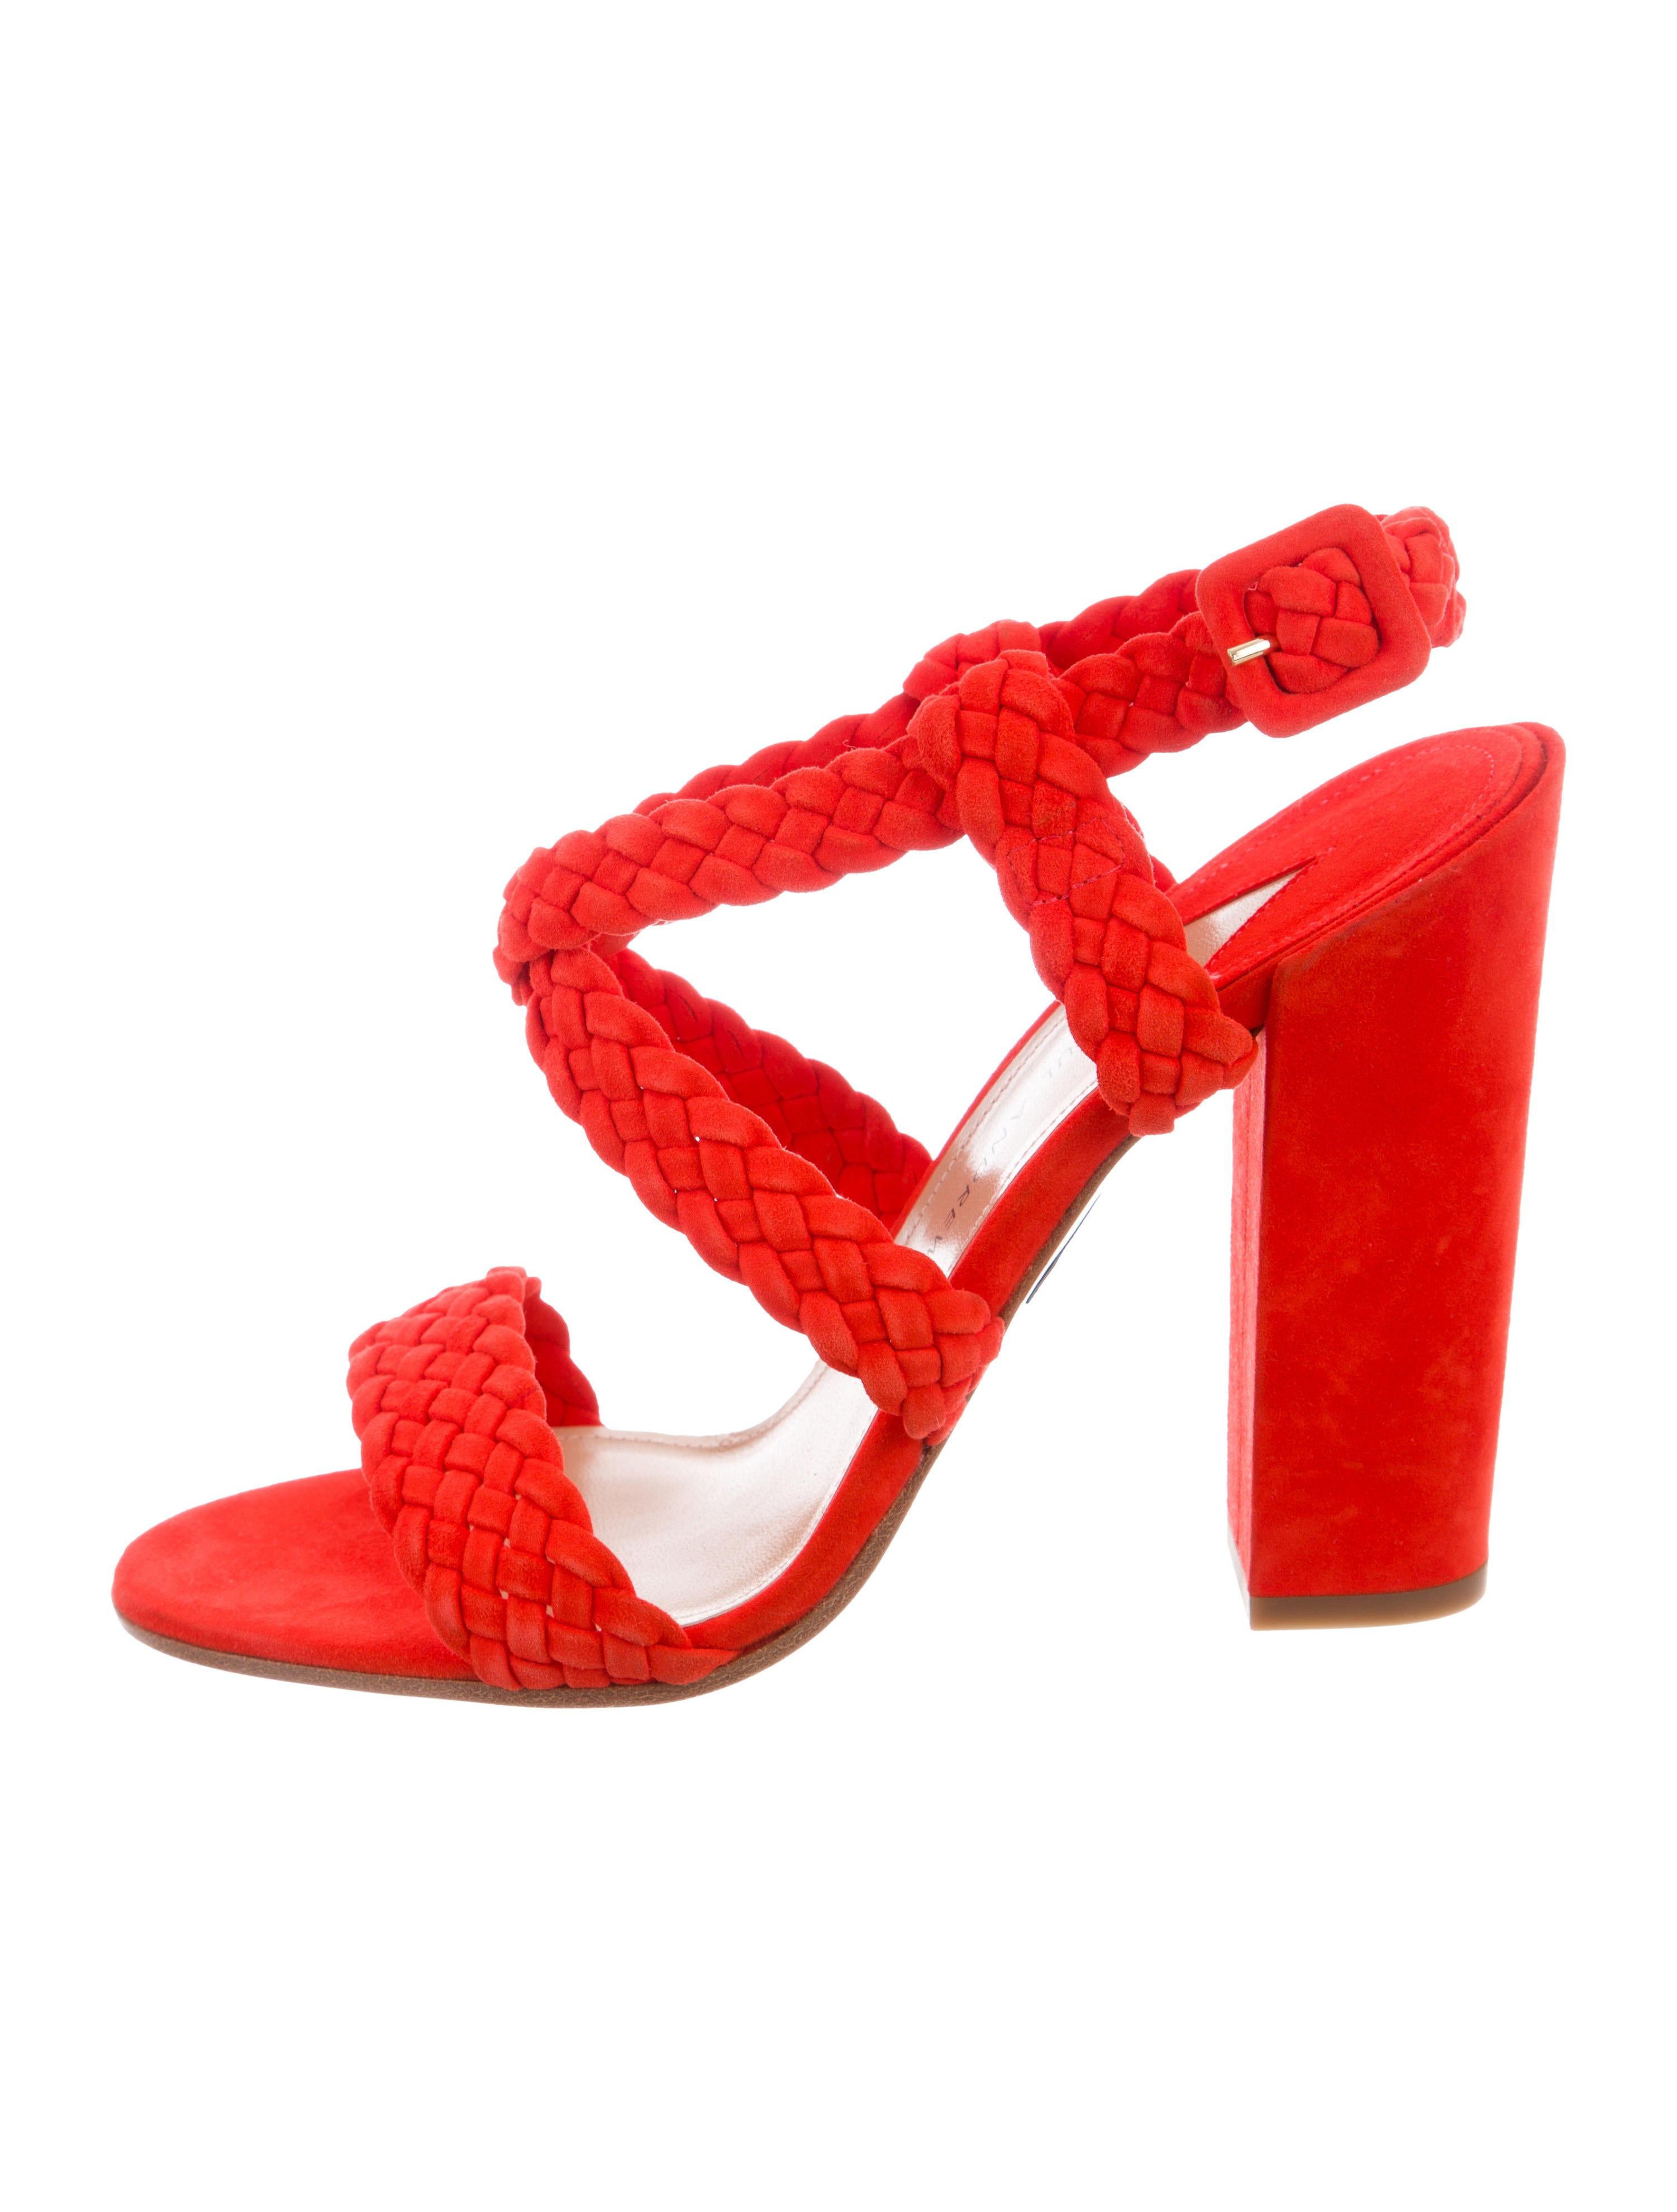 Paul Andrew Elisabet Multistrap Sandals w/ Tags cheap sale good selling cheap sale wholesale price best place for sale Y6mWJURf